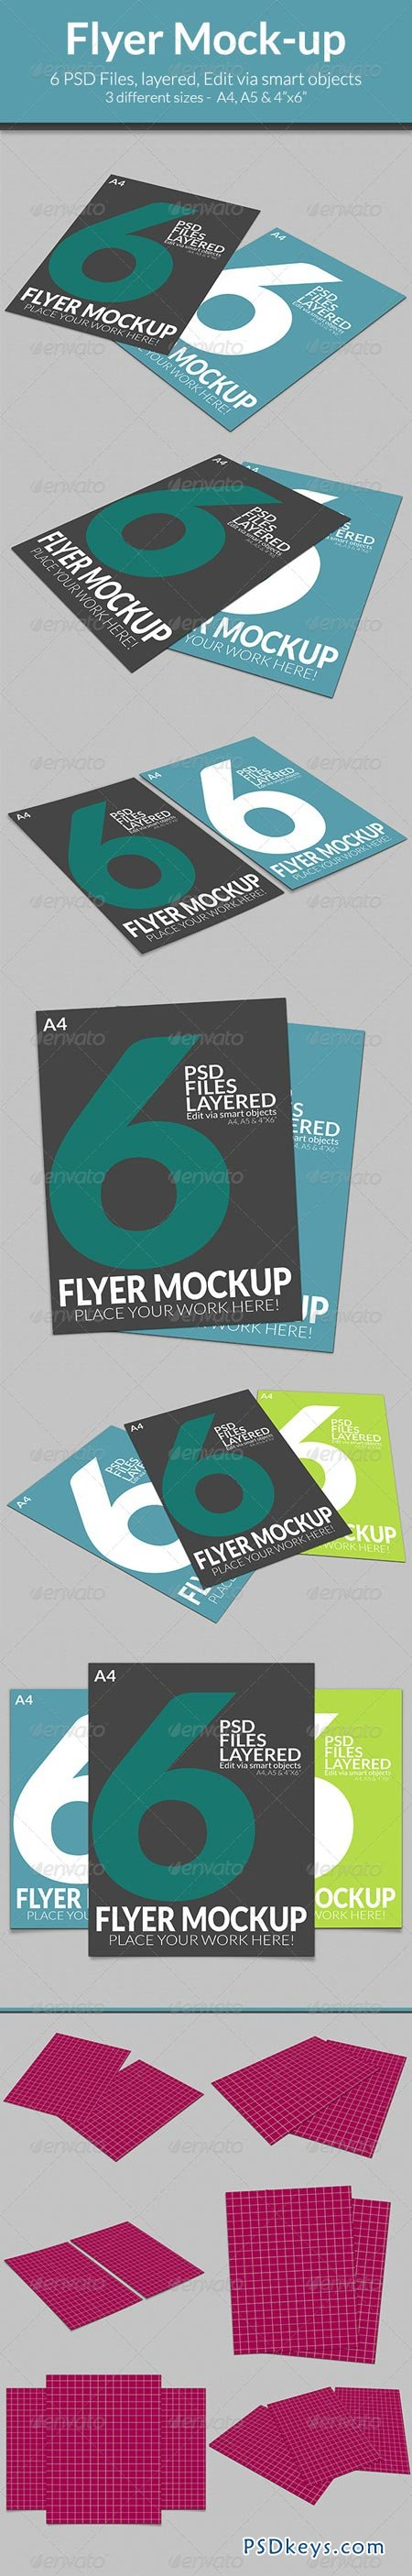 Flyer Mock-up SS3 7674760